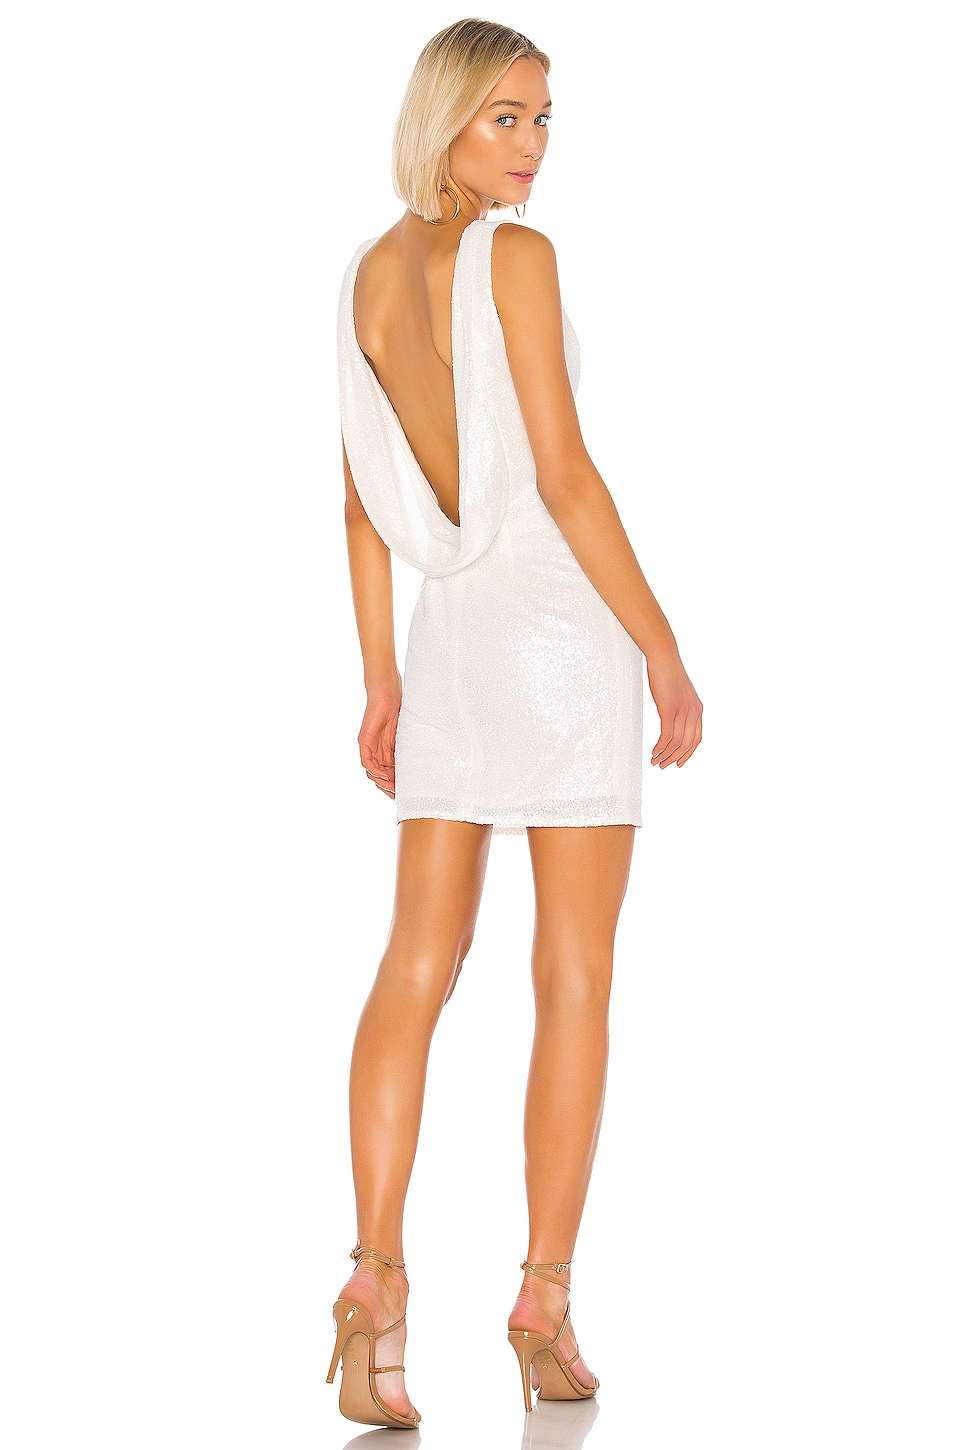 Katie May Sparkle Dress in Ivory